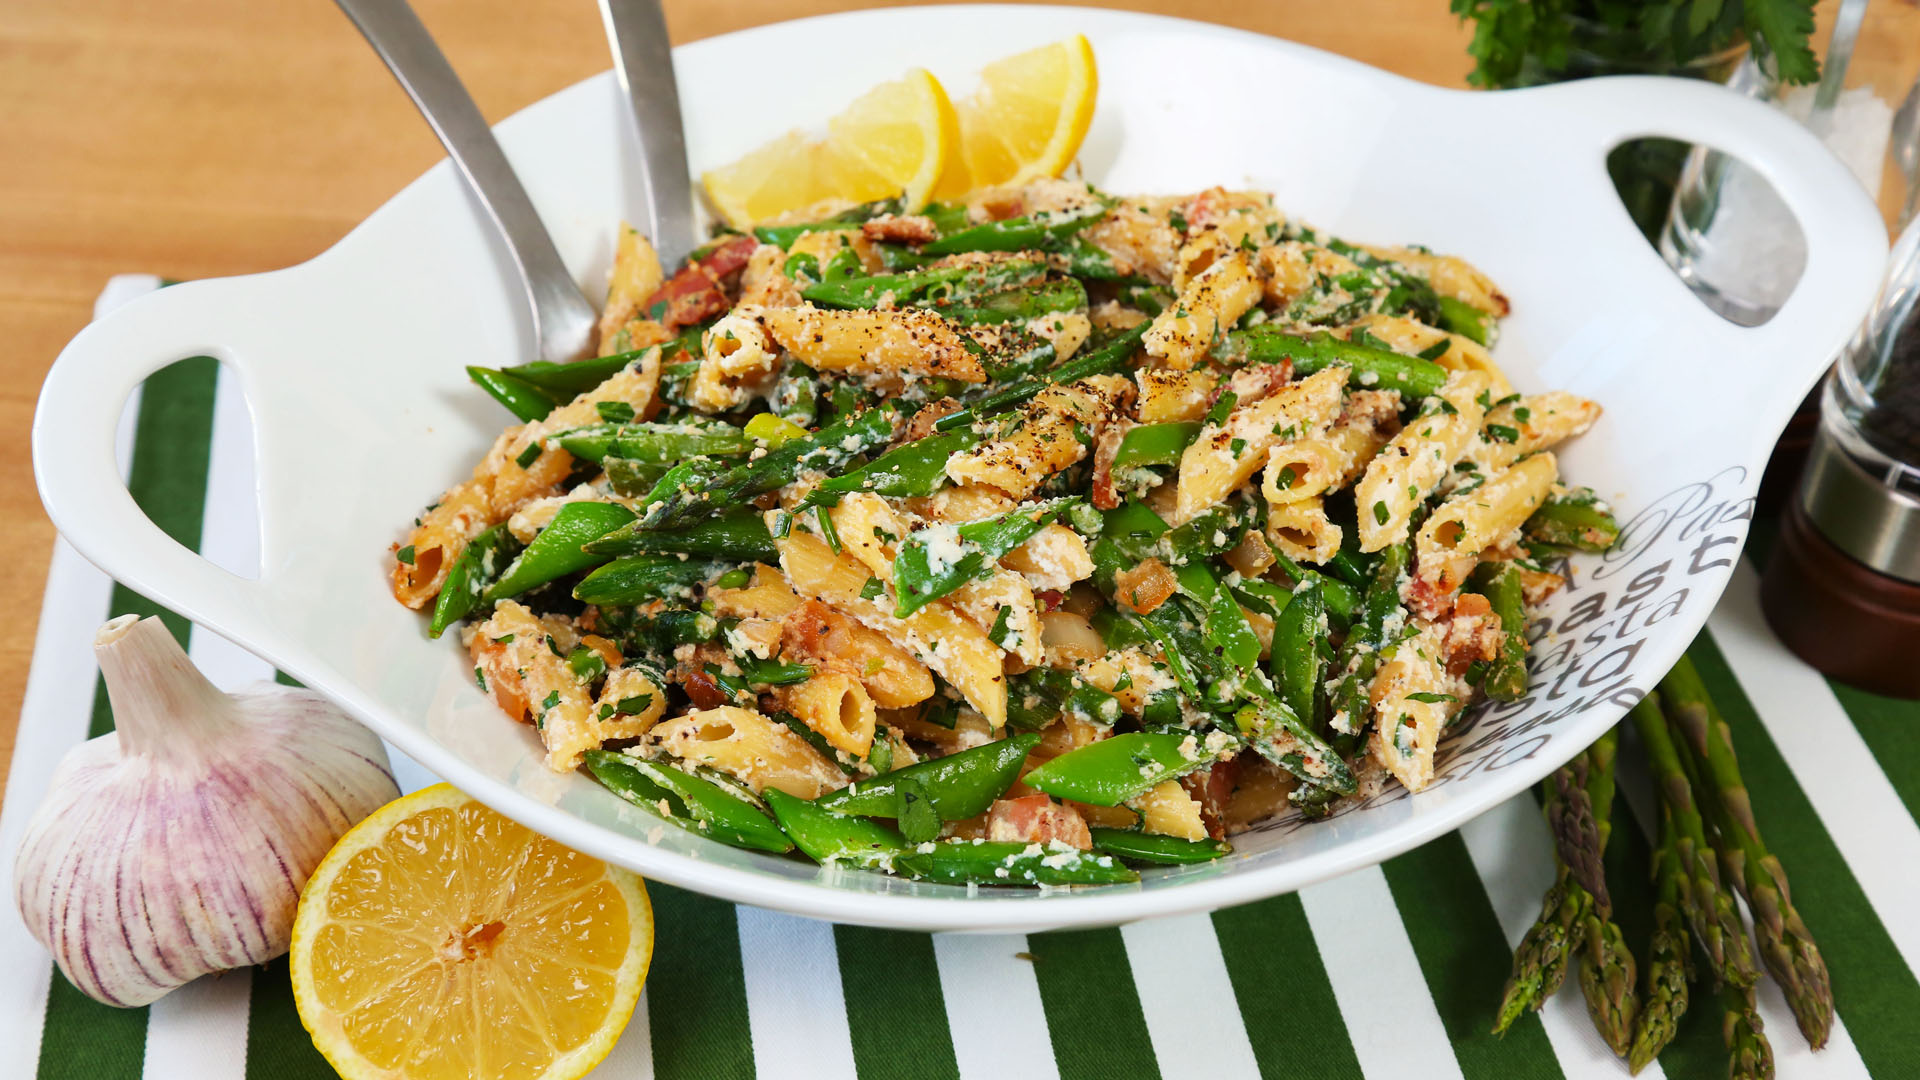 Asparagus-And-Spring-Pea-Penne_16x9_The-Domestic-Geek